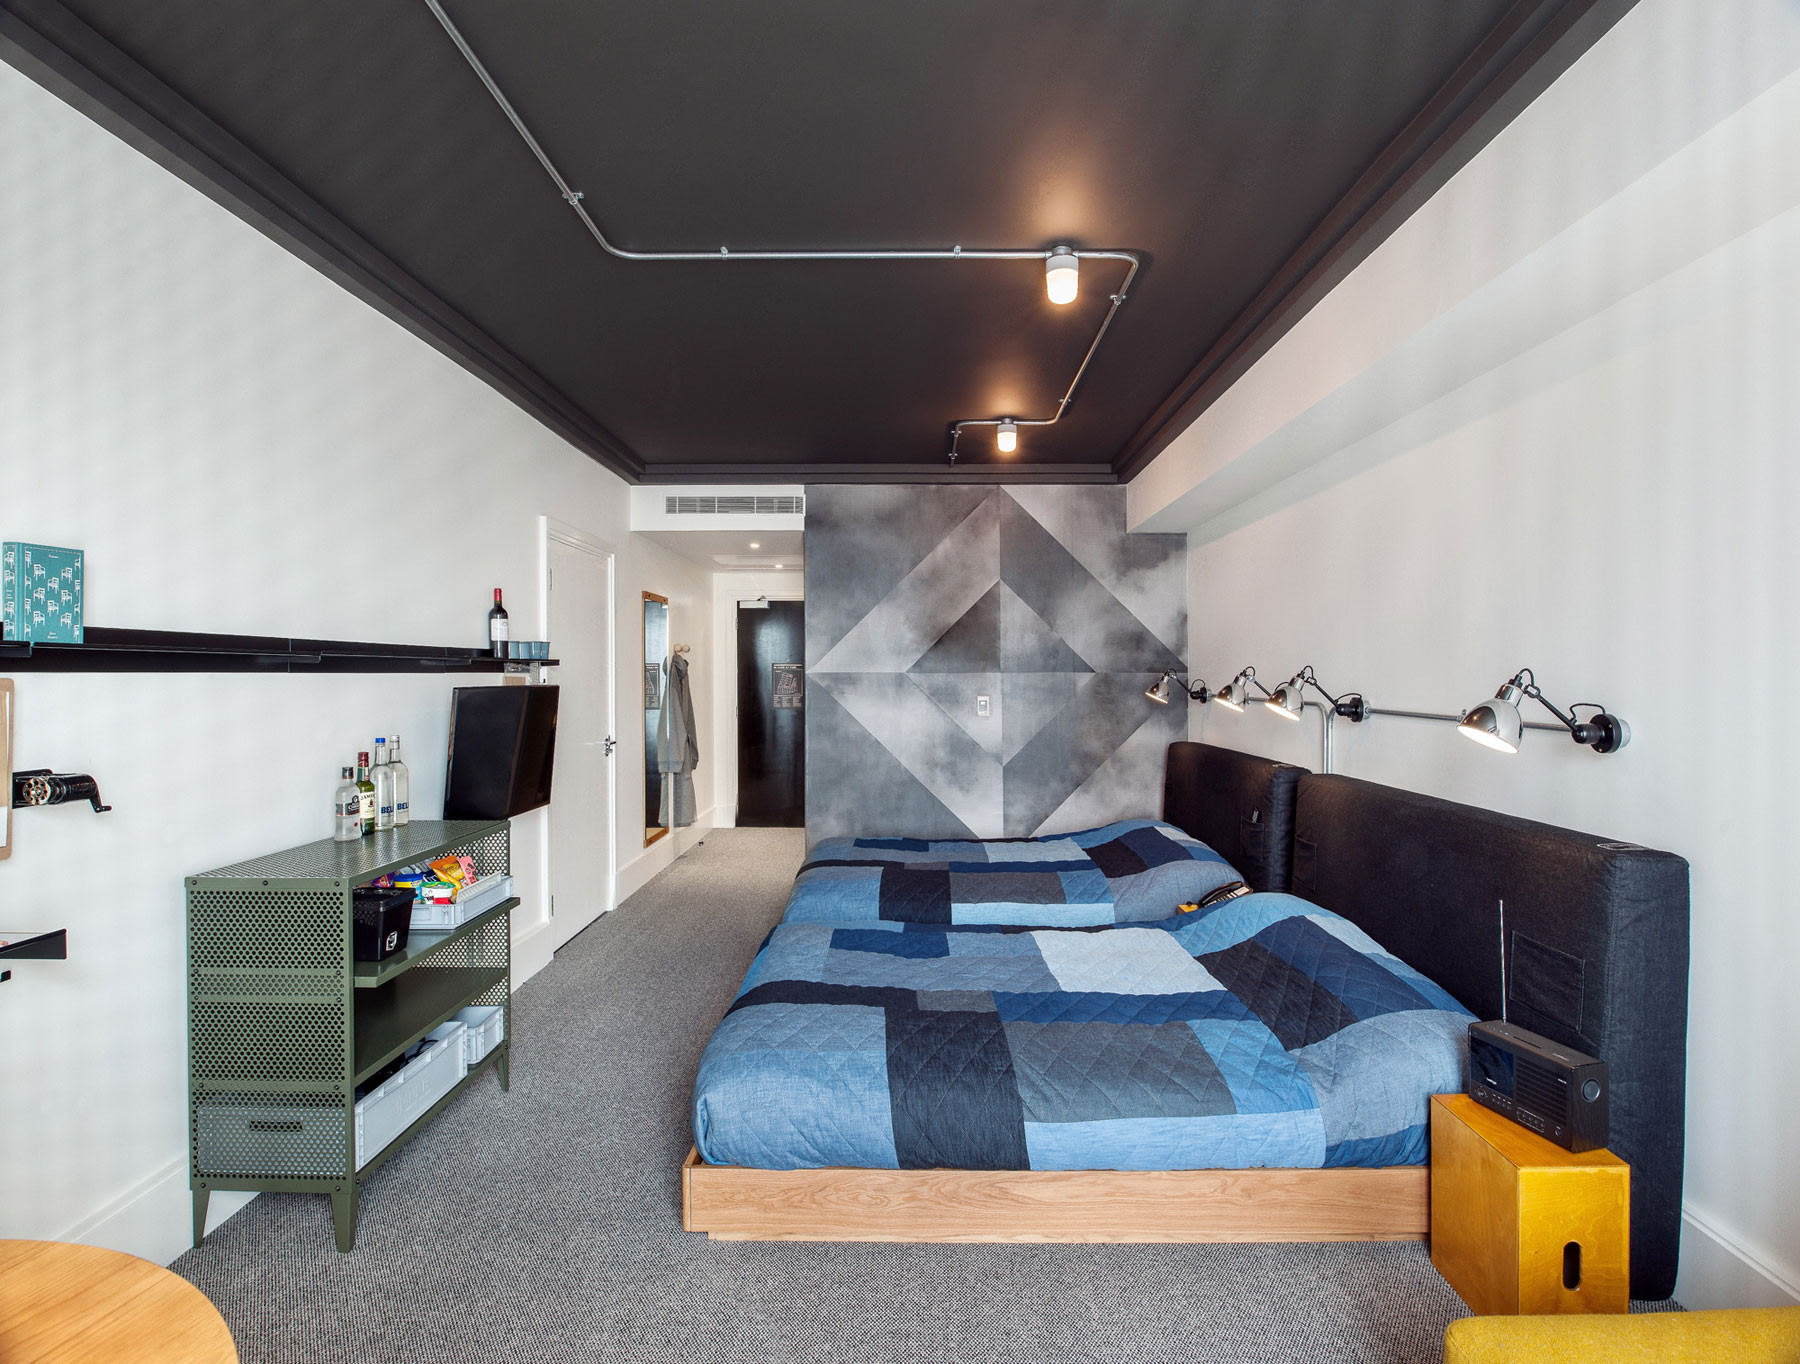 Ace hotel london universal design studio archdaily for Design hotel london